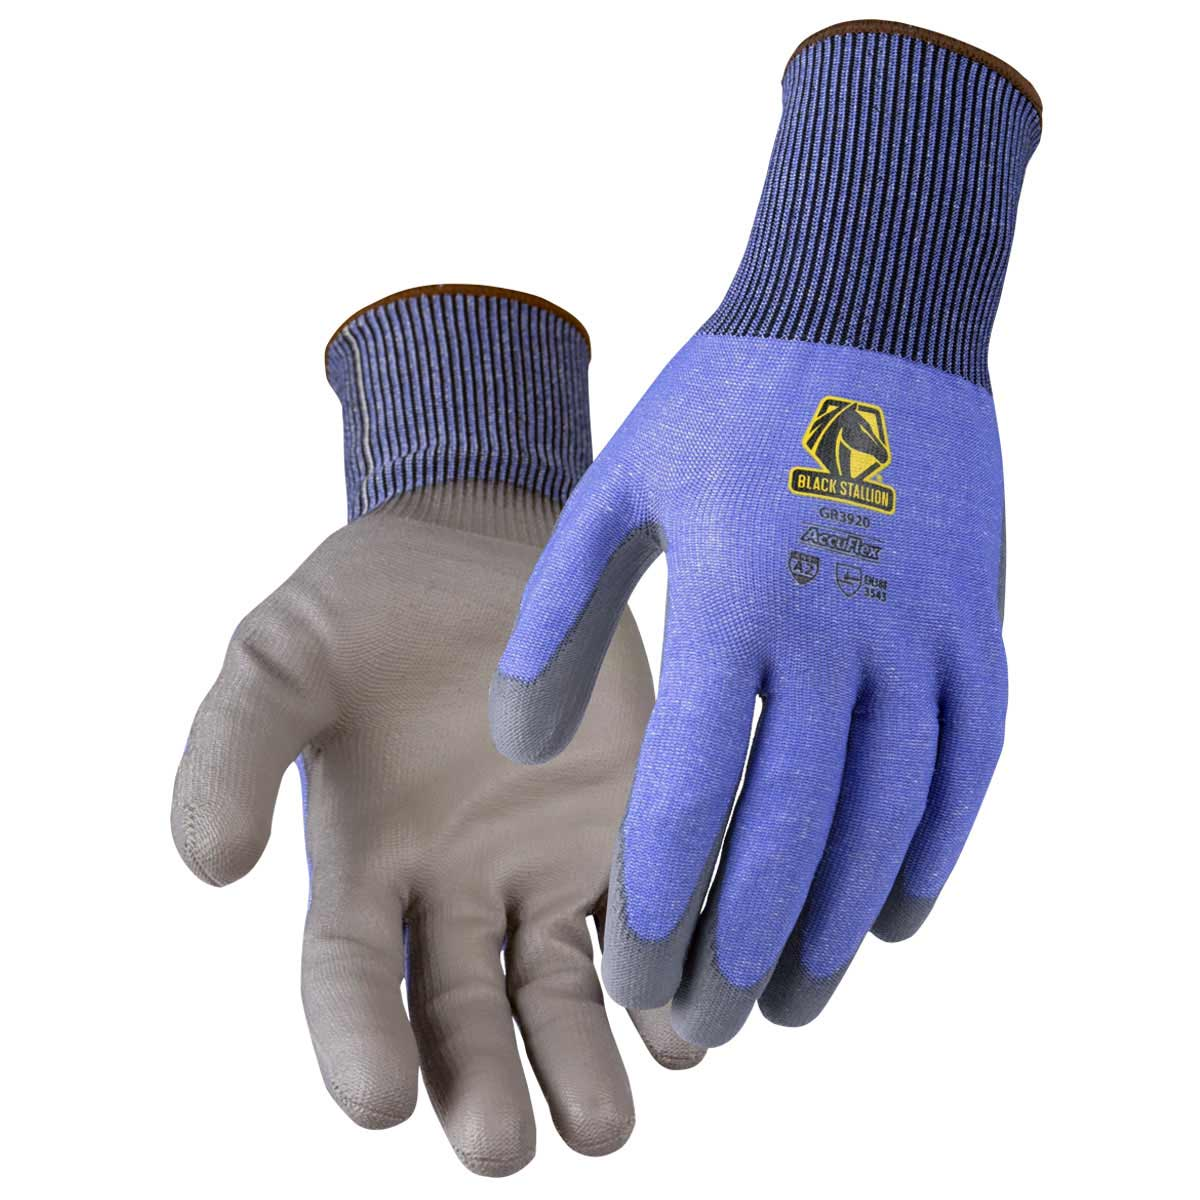 A2 CUT RESISTANT PU COATED BLUE/GRAY 15G HPPE BLEND GLOVE. Pack 12. X Large. GR3920-BG-XLG